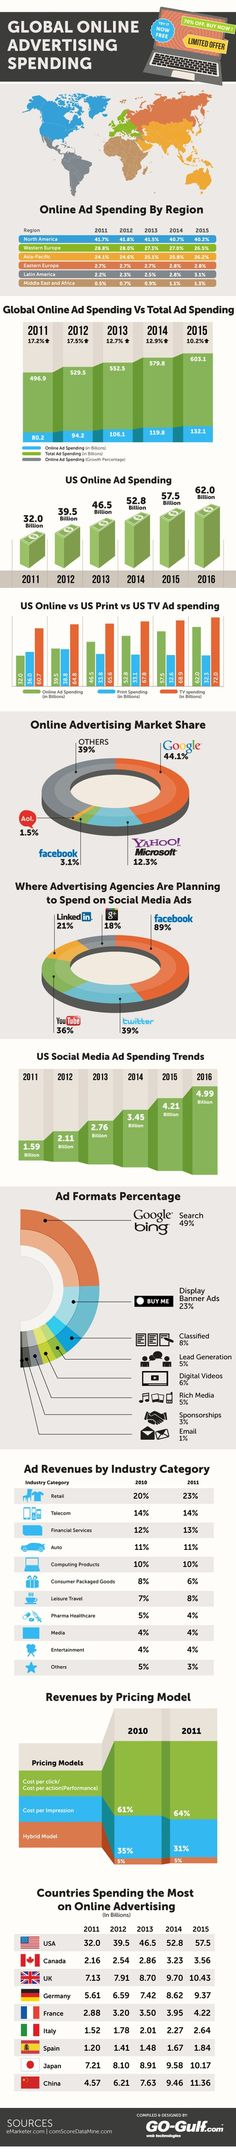 Online Advertising spending by Region « MEWS – Middle East Web Solutions – Web Development, Web Design, Internet Marketing, SEO , SEM In the Middle East.